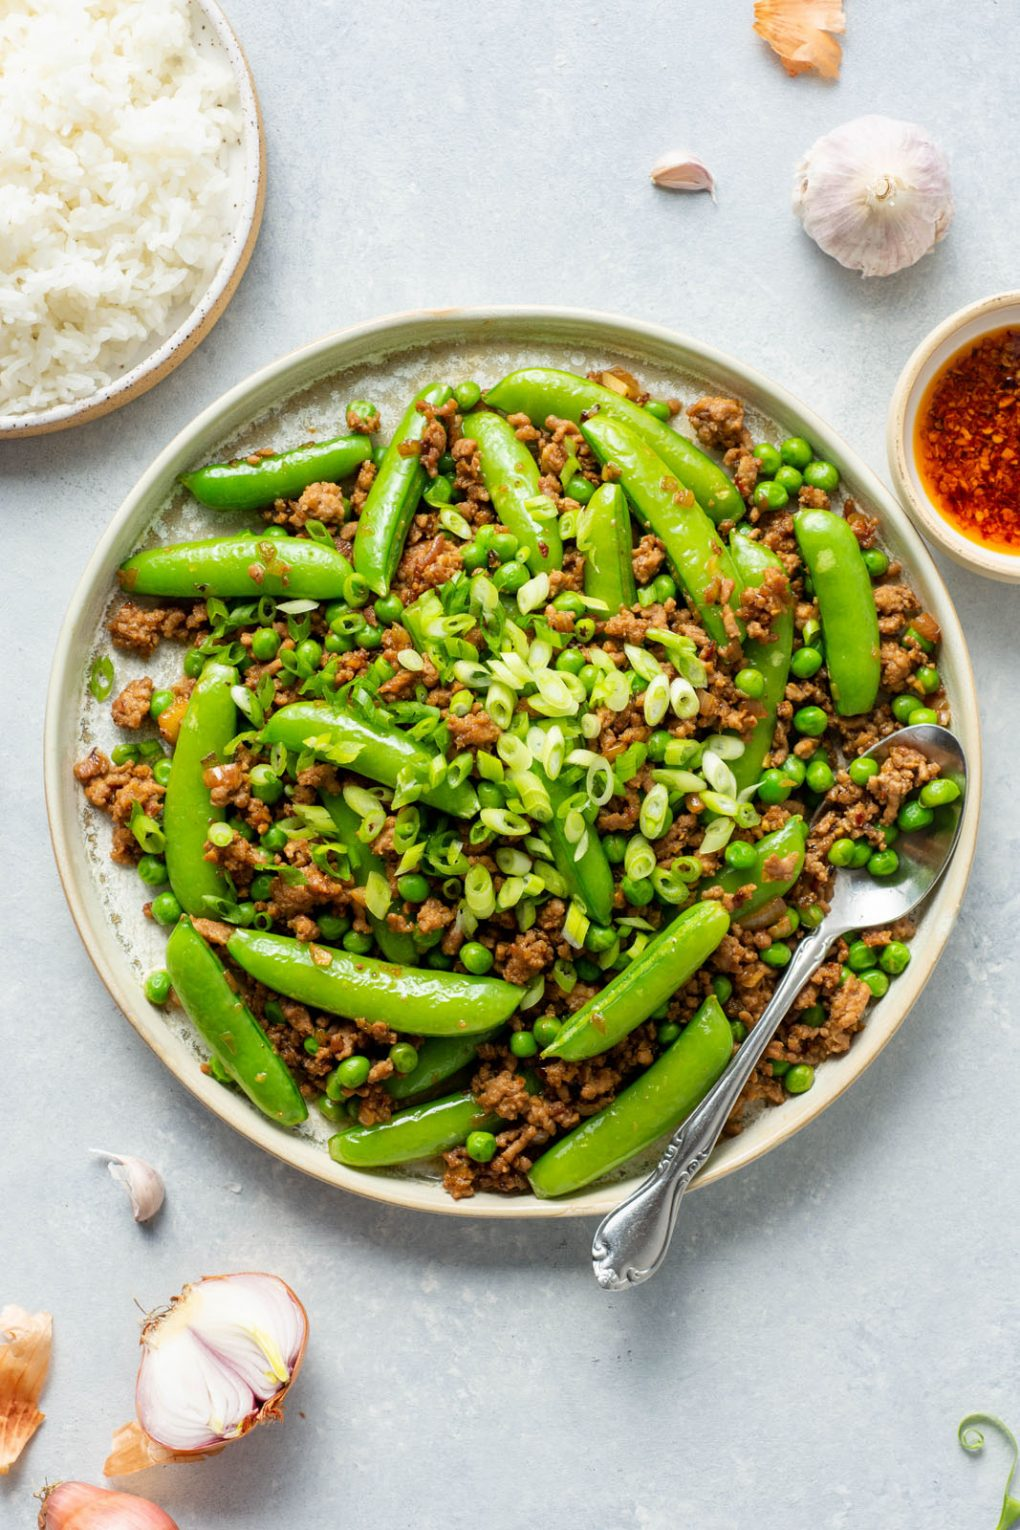 Overhead shot of a round white rimmed ceramic plate filled with a ground pork stir fry with green peas, sugar snap peas, and topped with plenty of green onions. A large silver spoon filled with stir fry is angled off the side of the plate. On a light colored background, next to a small bowl of white rice, a little mini bowl of bright red chili oil, shot cut shallots and garlic cloves.